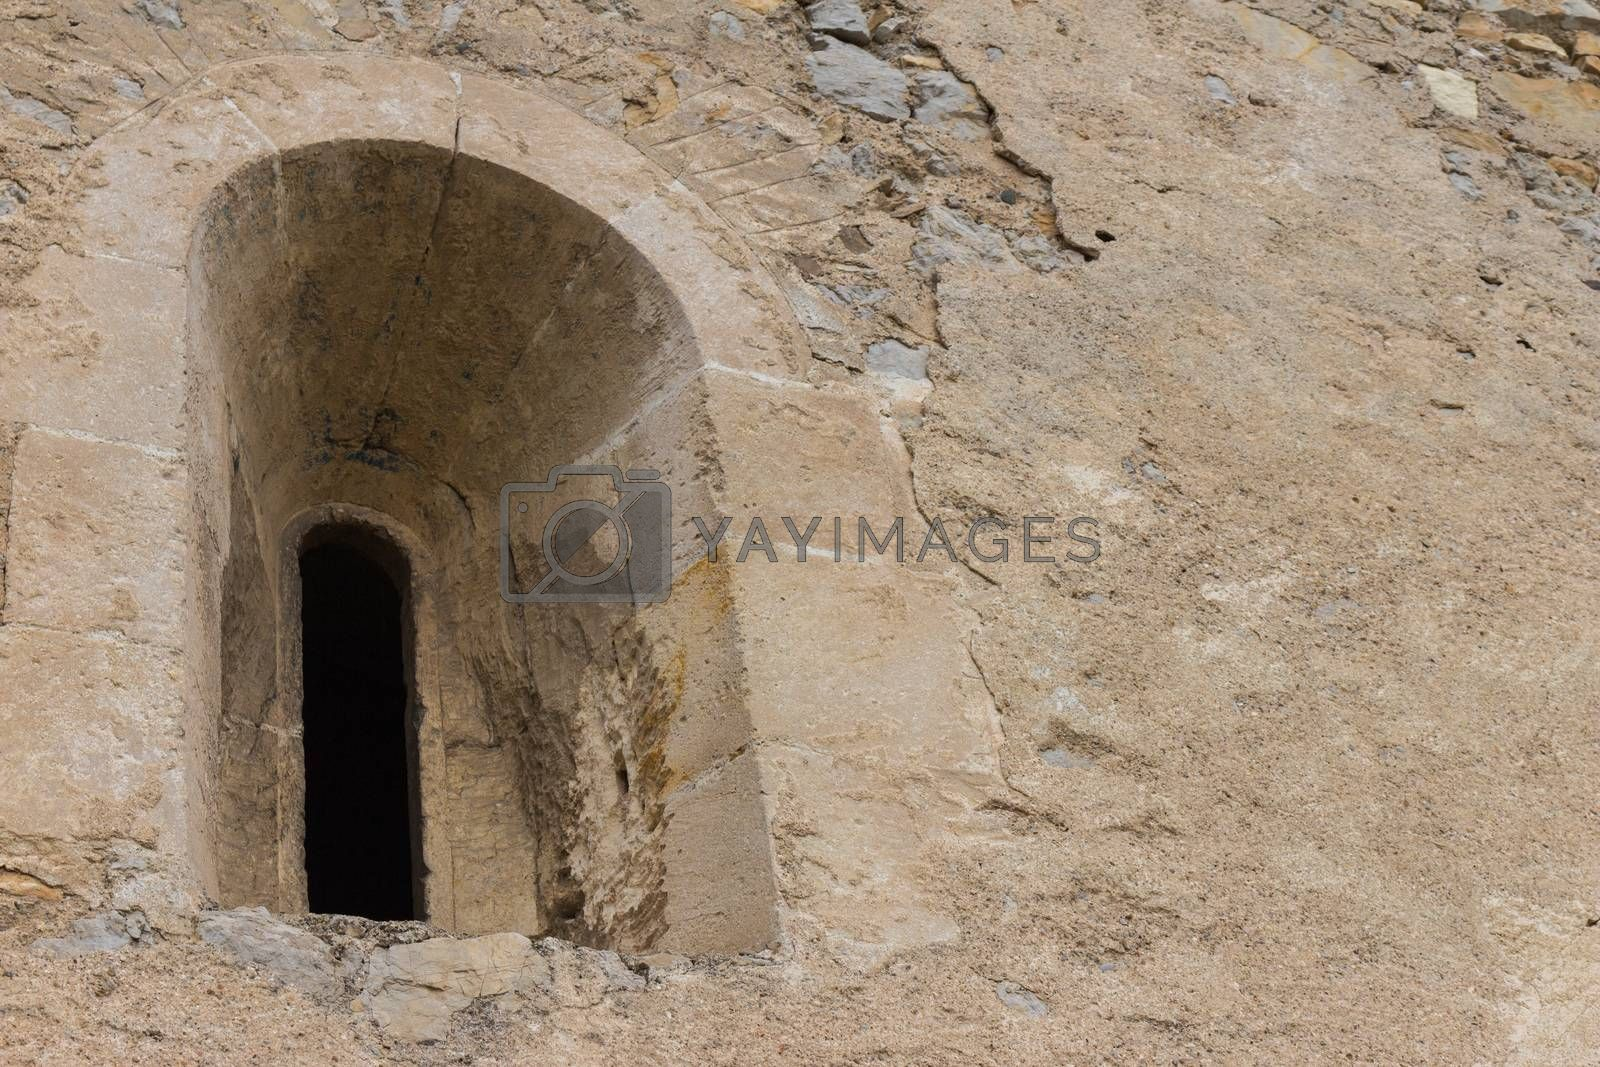 Medieval window of castle ruins in The Styria, Austria